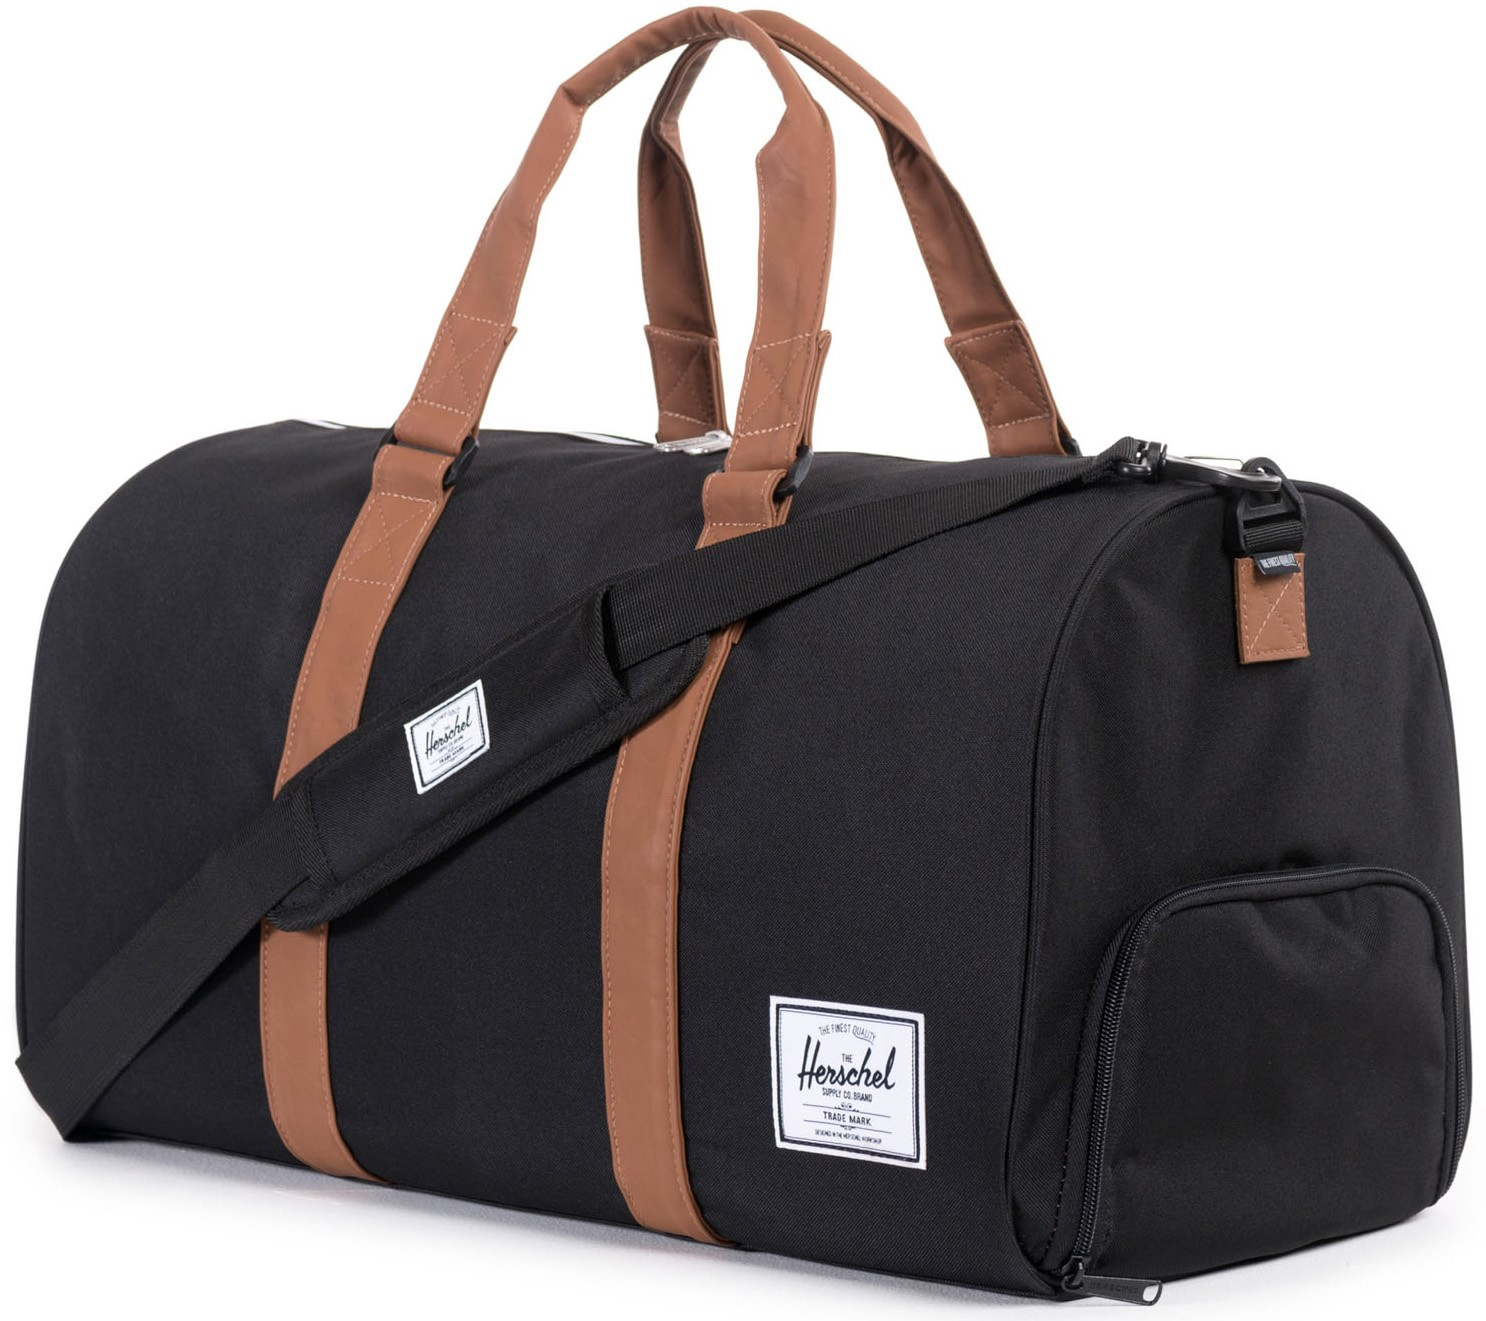 Herschel Gym Bag | Herschel Duffle Bag | Herschel Novel Bag